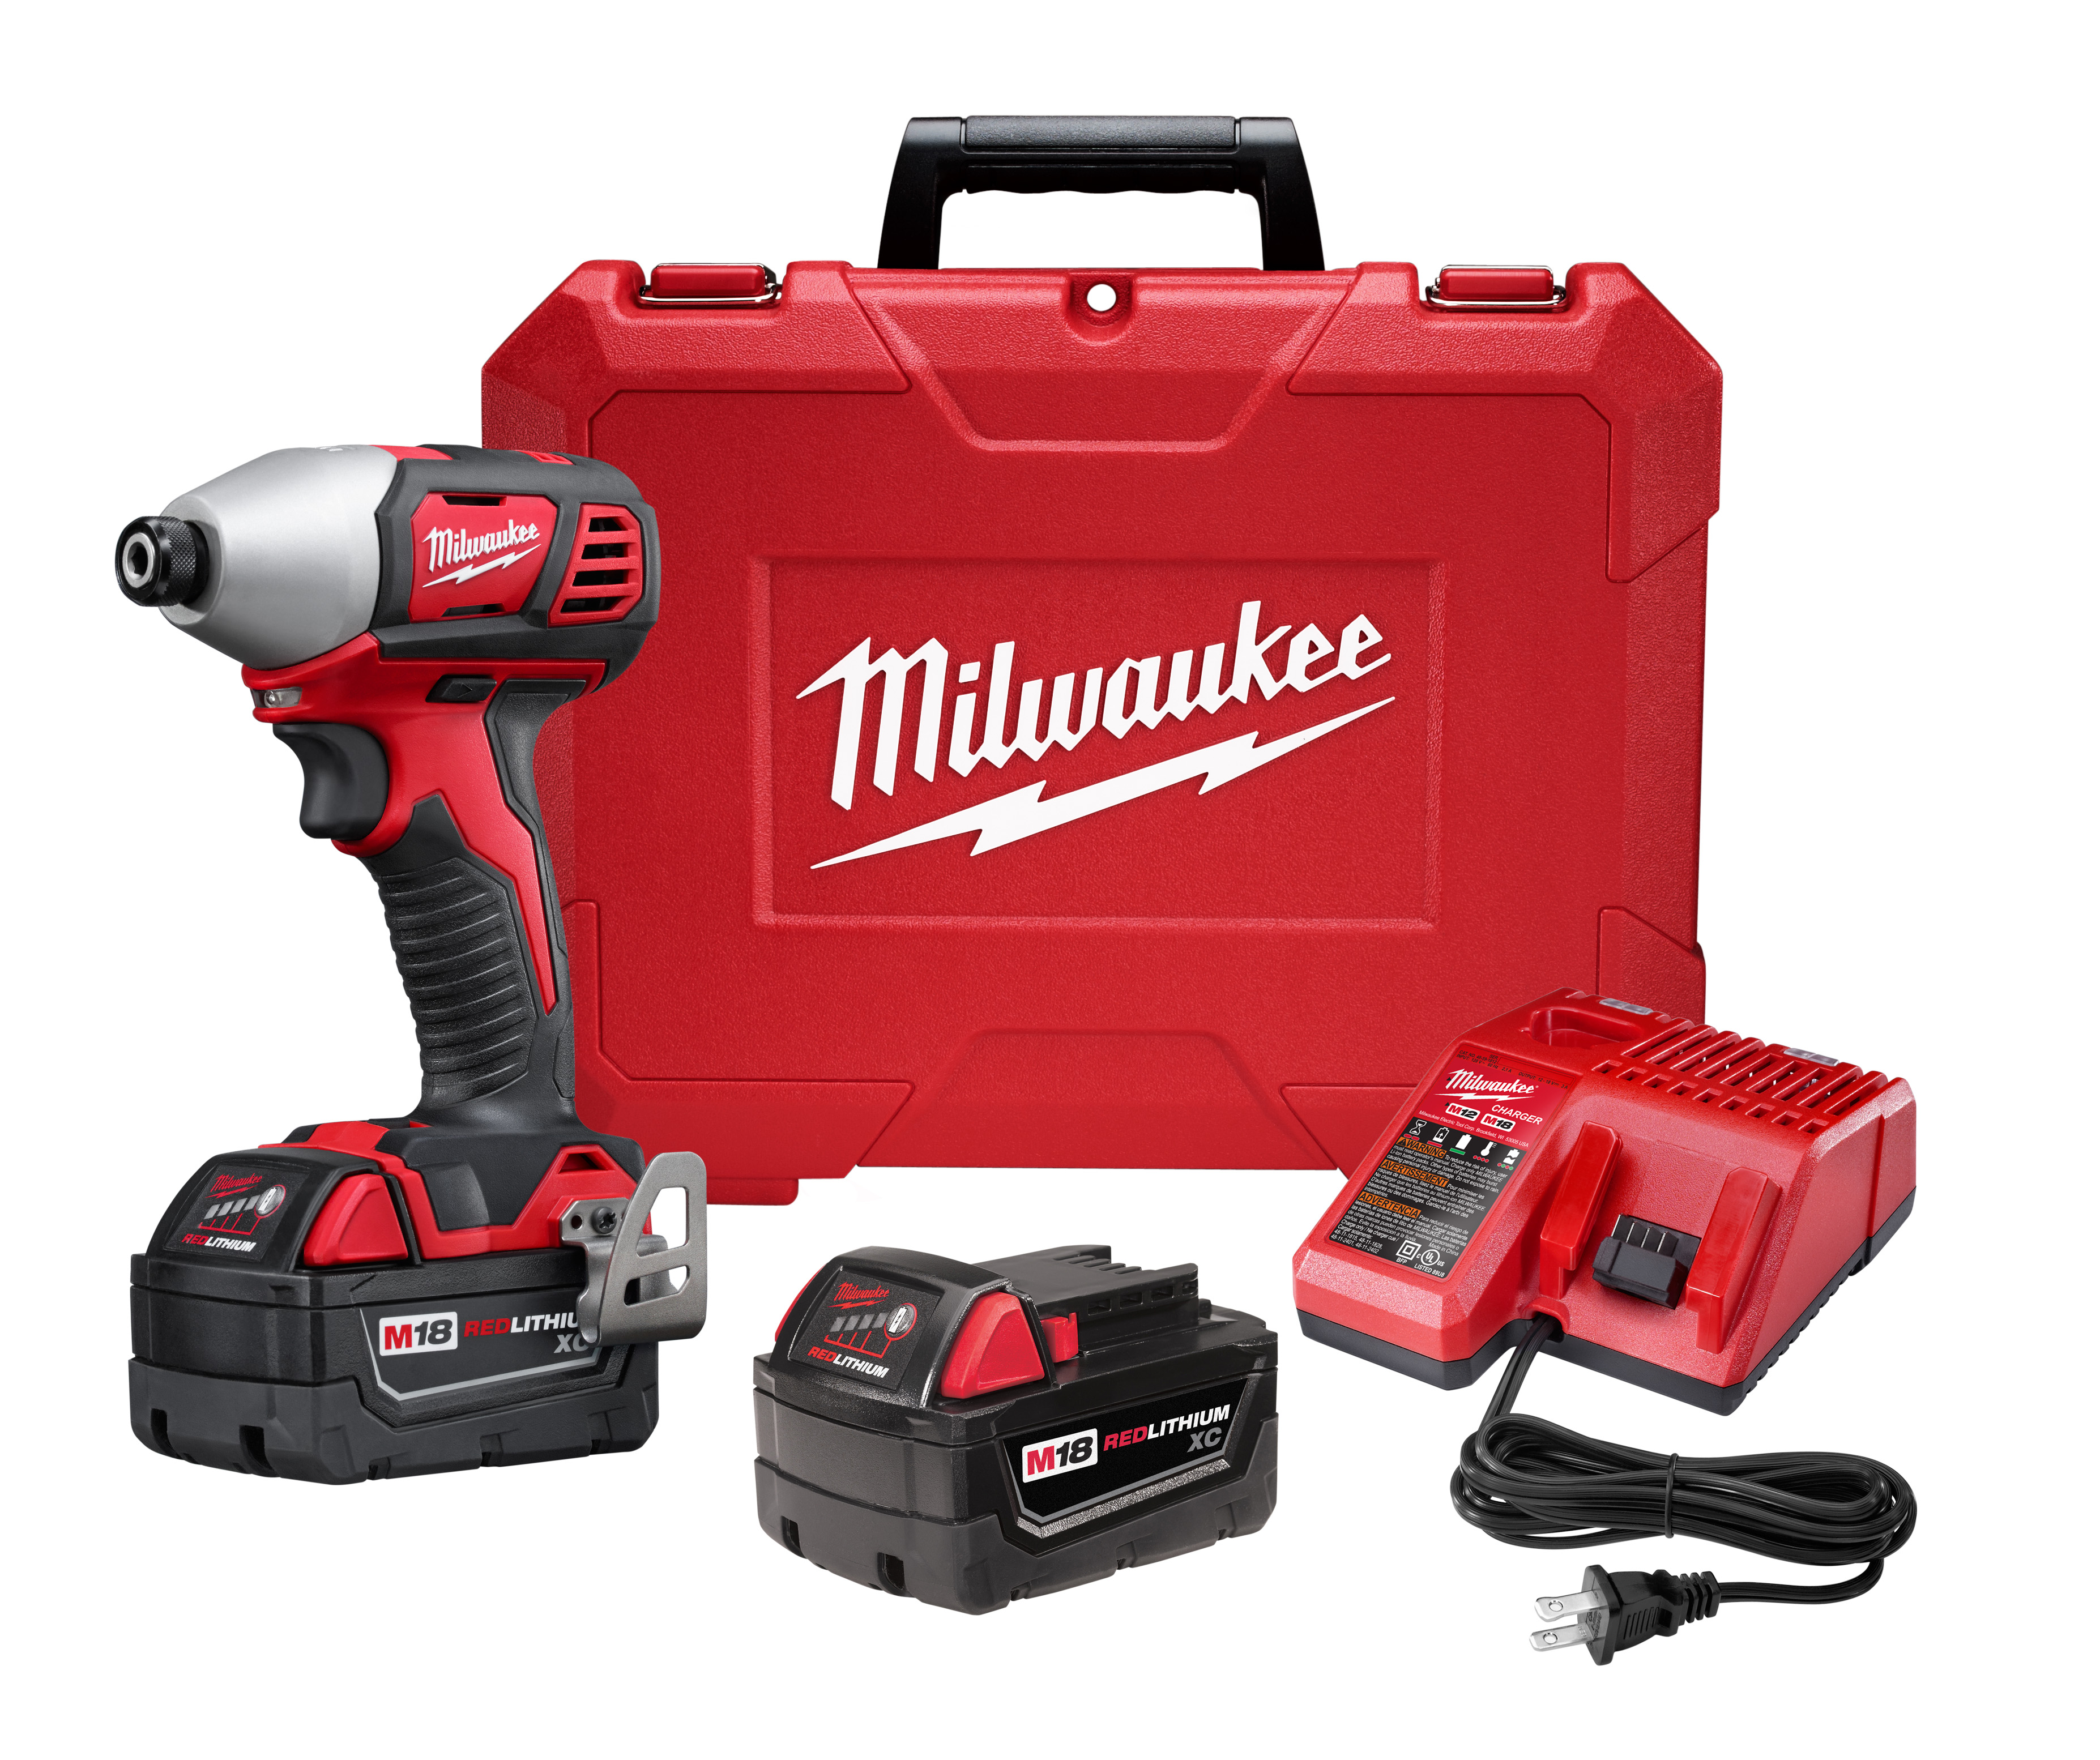 Milwaukee® M18™ 2657-22 Compact Cordless Impact Driver Kit, 1/4 in Hex/Straight Drive, 0 to 3350 bpm, 1500 in-lb Torque, 18 VAC, 5-1/2 in OAL